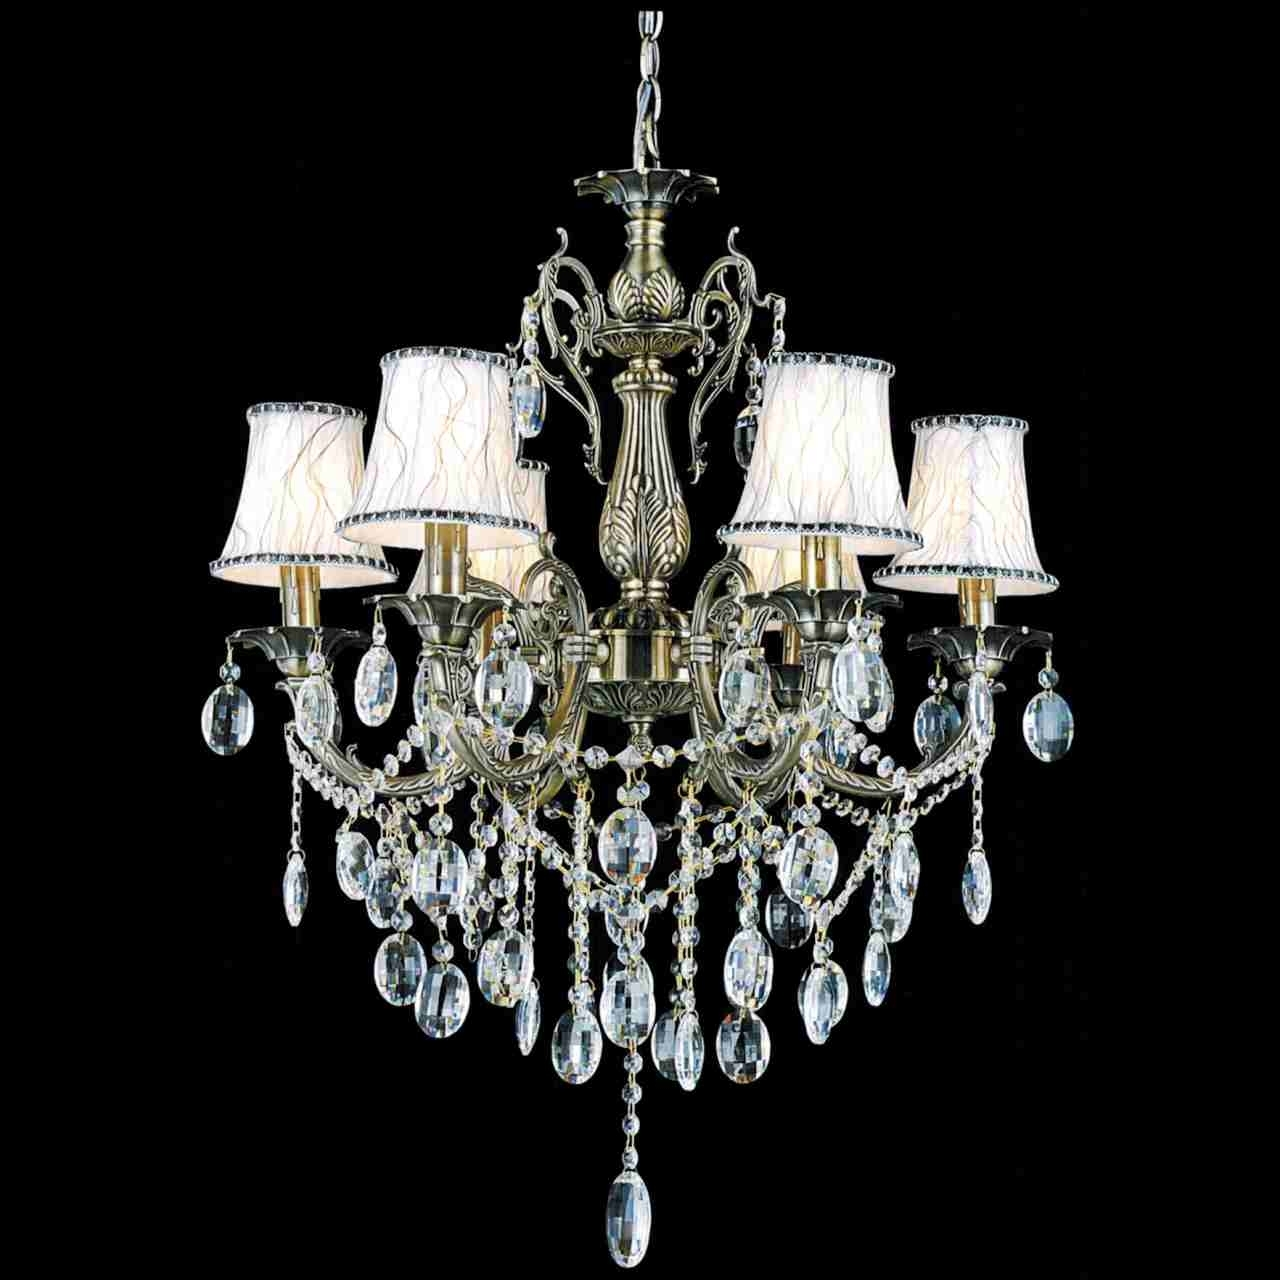 Crystal And Brass Chandelier Throughout Popular Brizzo Lighting Stores (View 11 of 20)